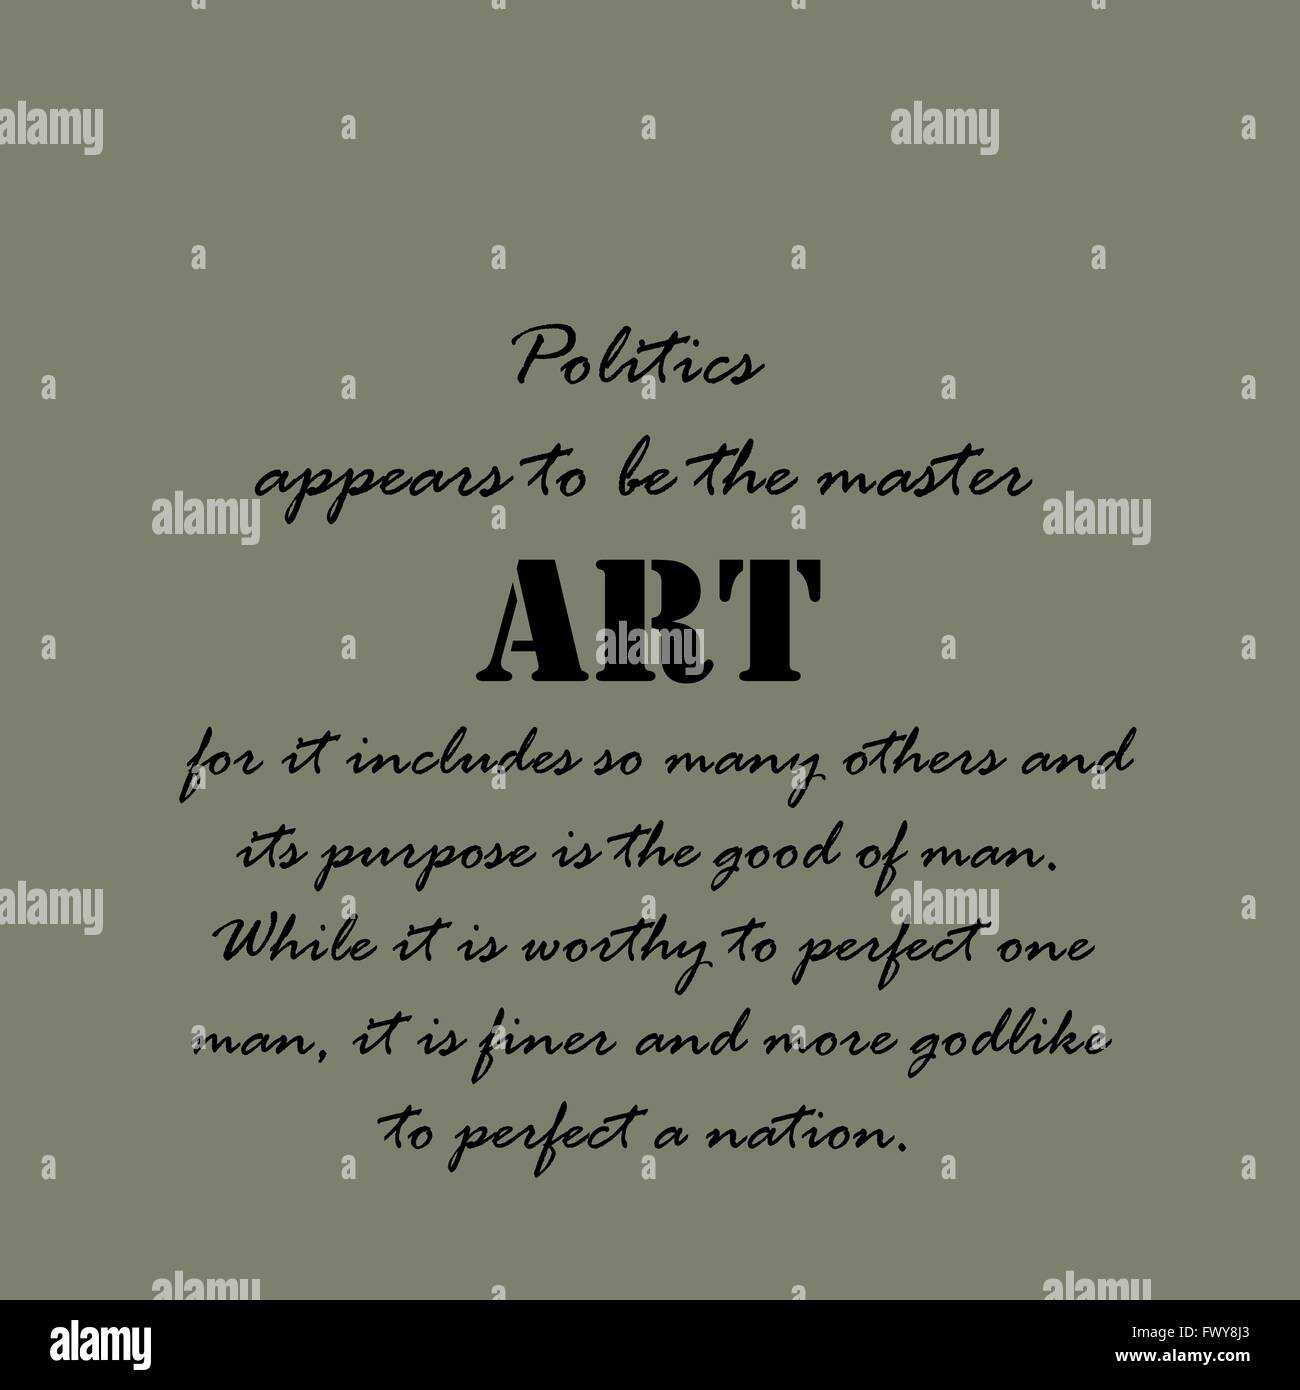 Politics appears to be the master... - Stock Vector